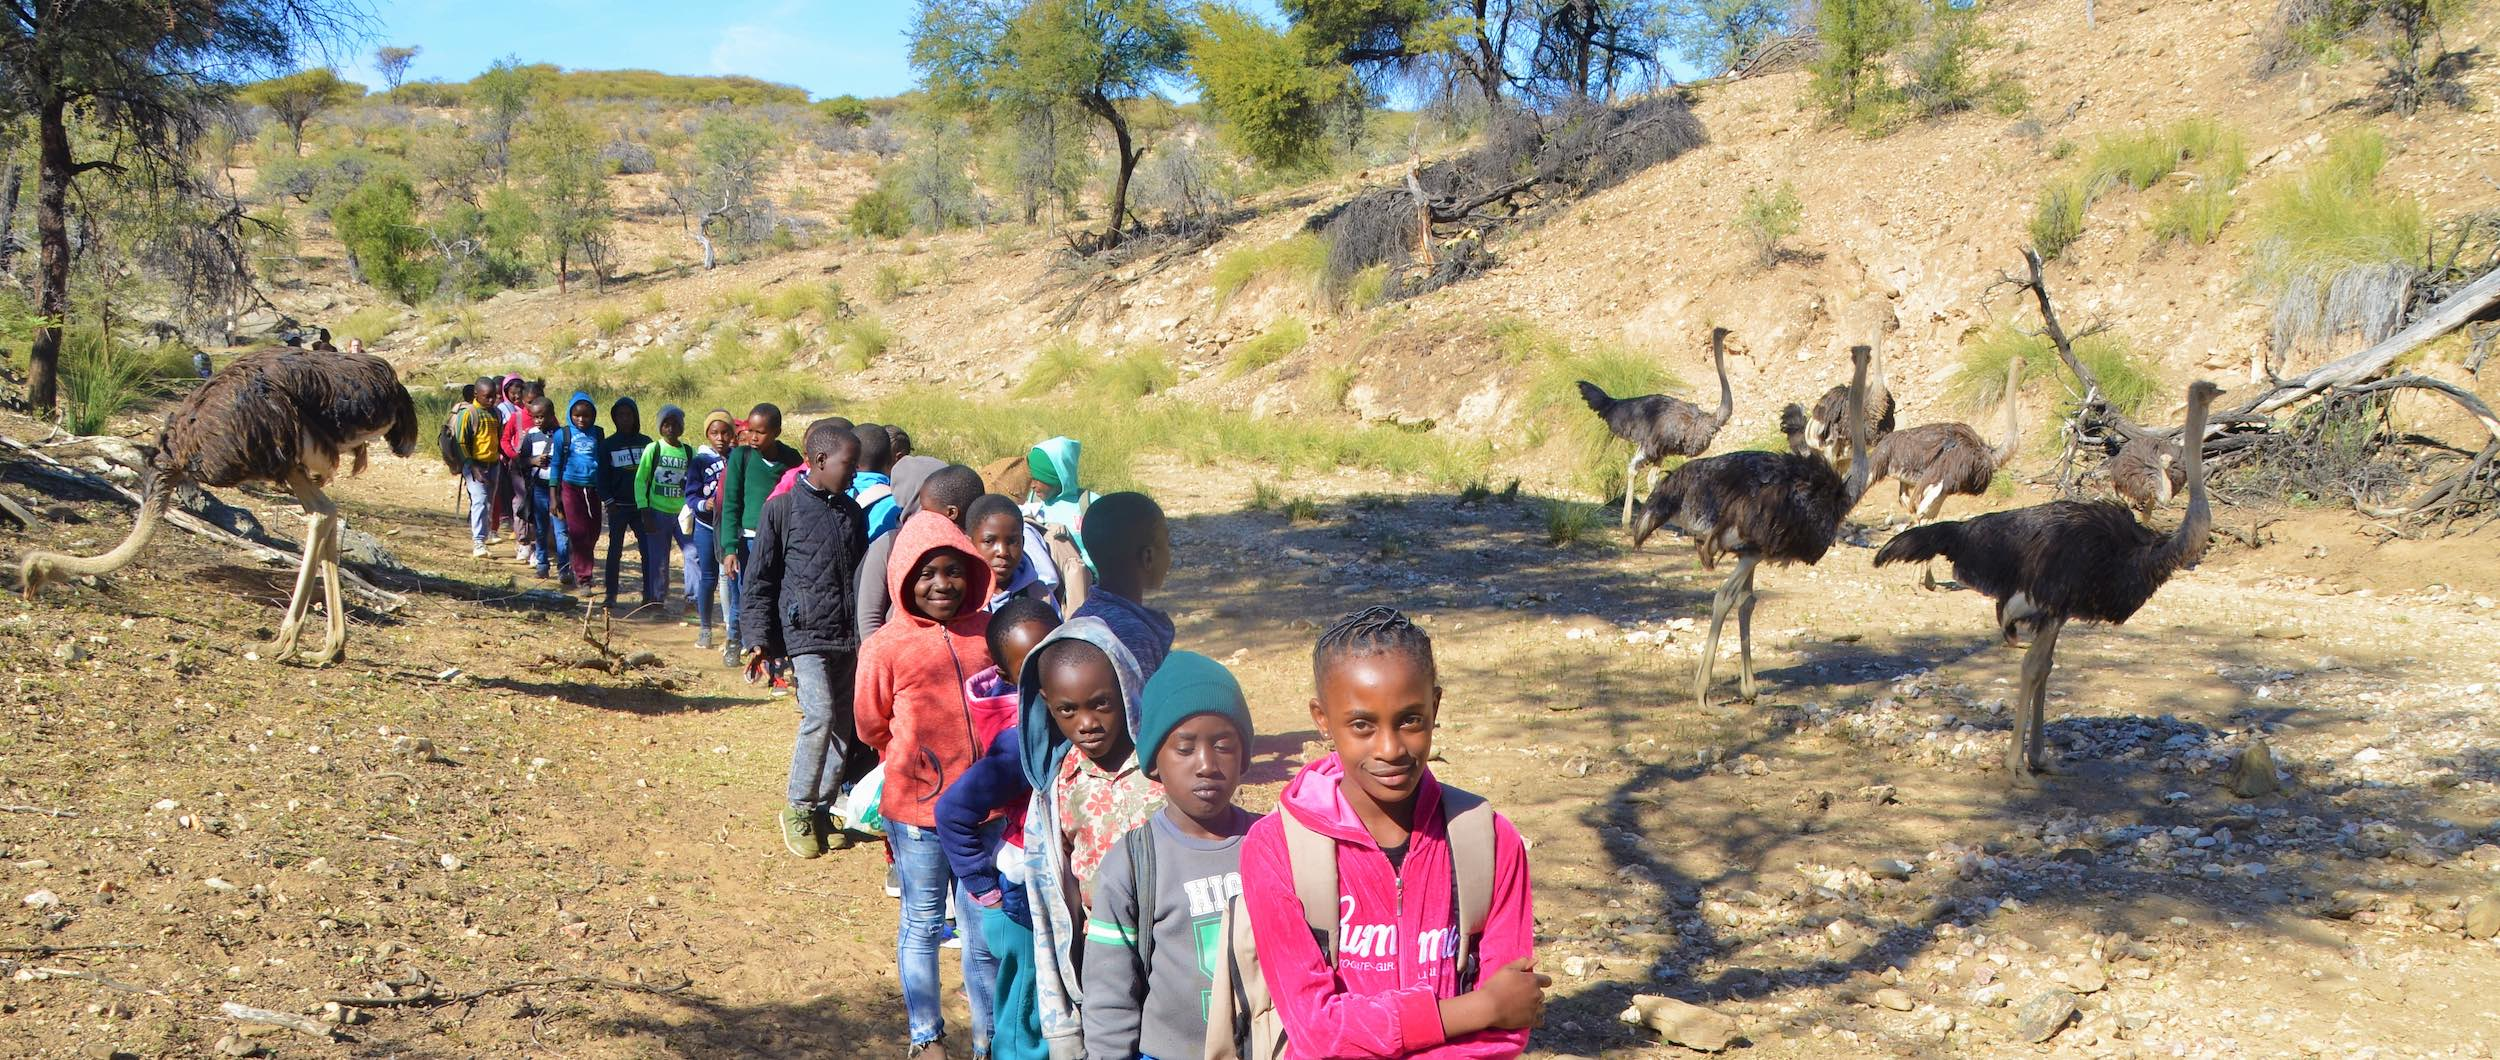 A line of children on a KEEP excusrsion encounter several giraffe in a dry riverbed.